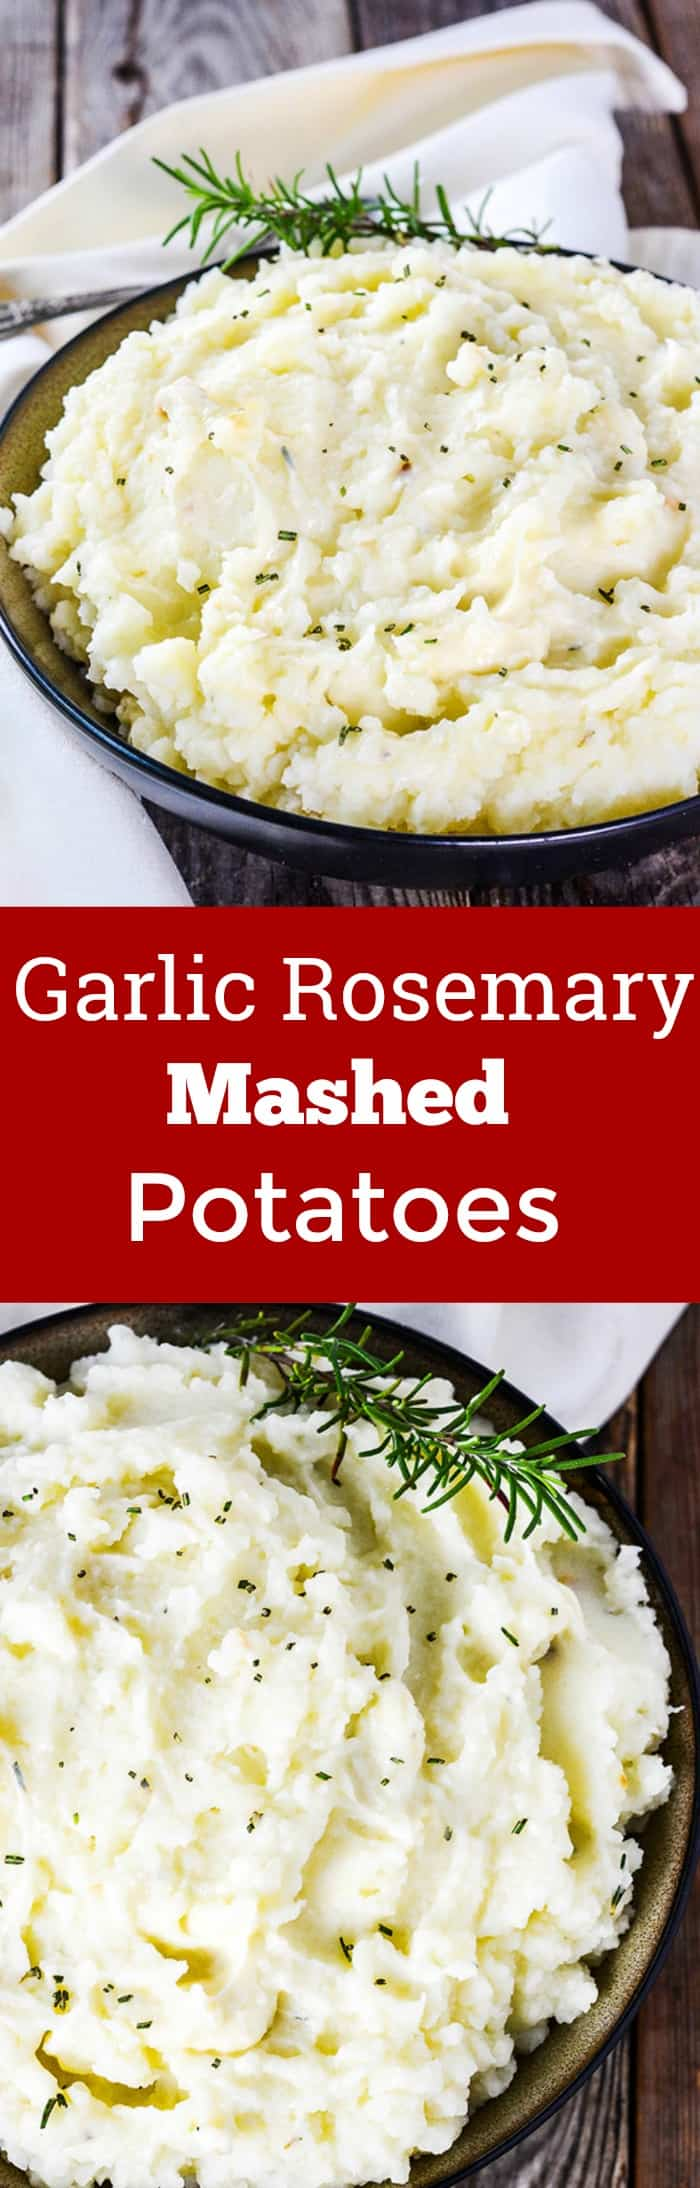 Garlic-Rosemary-Mashed-Potatoes